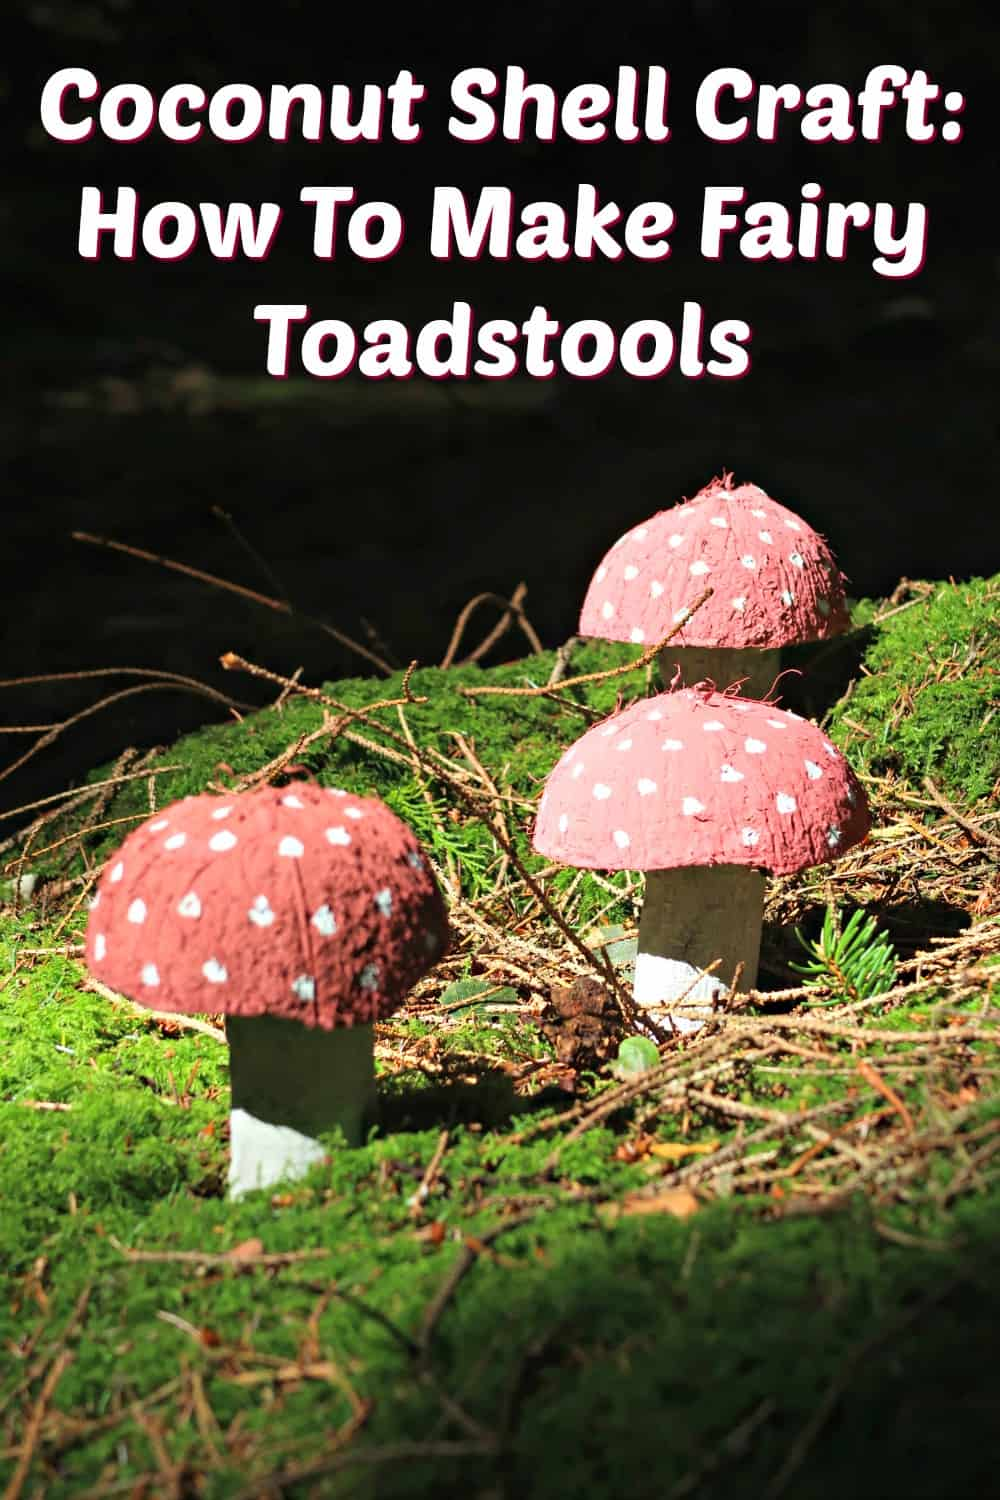 In this simple coconut shell craft we make gorgeous fairy toadstools for our garden using non-toxic paint to keep them environmentally friendly.